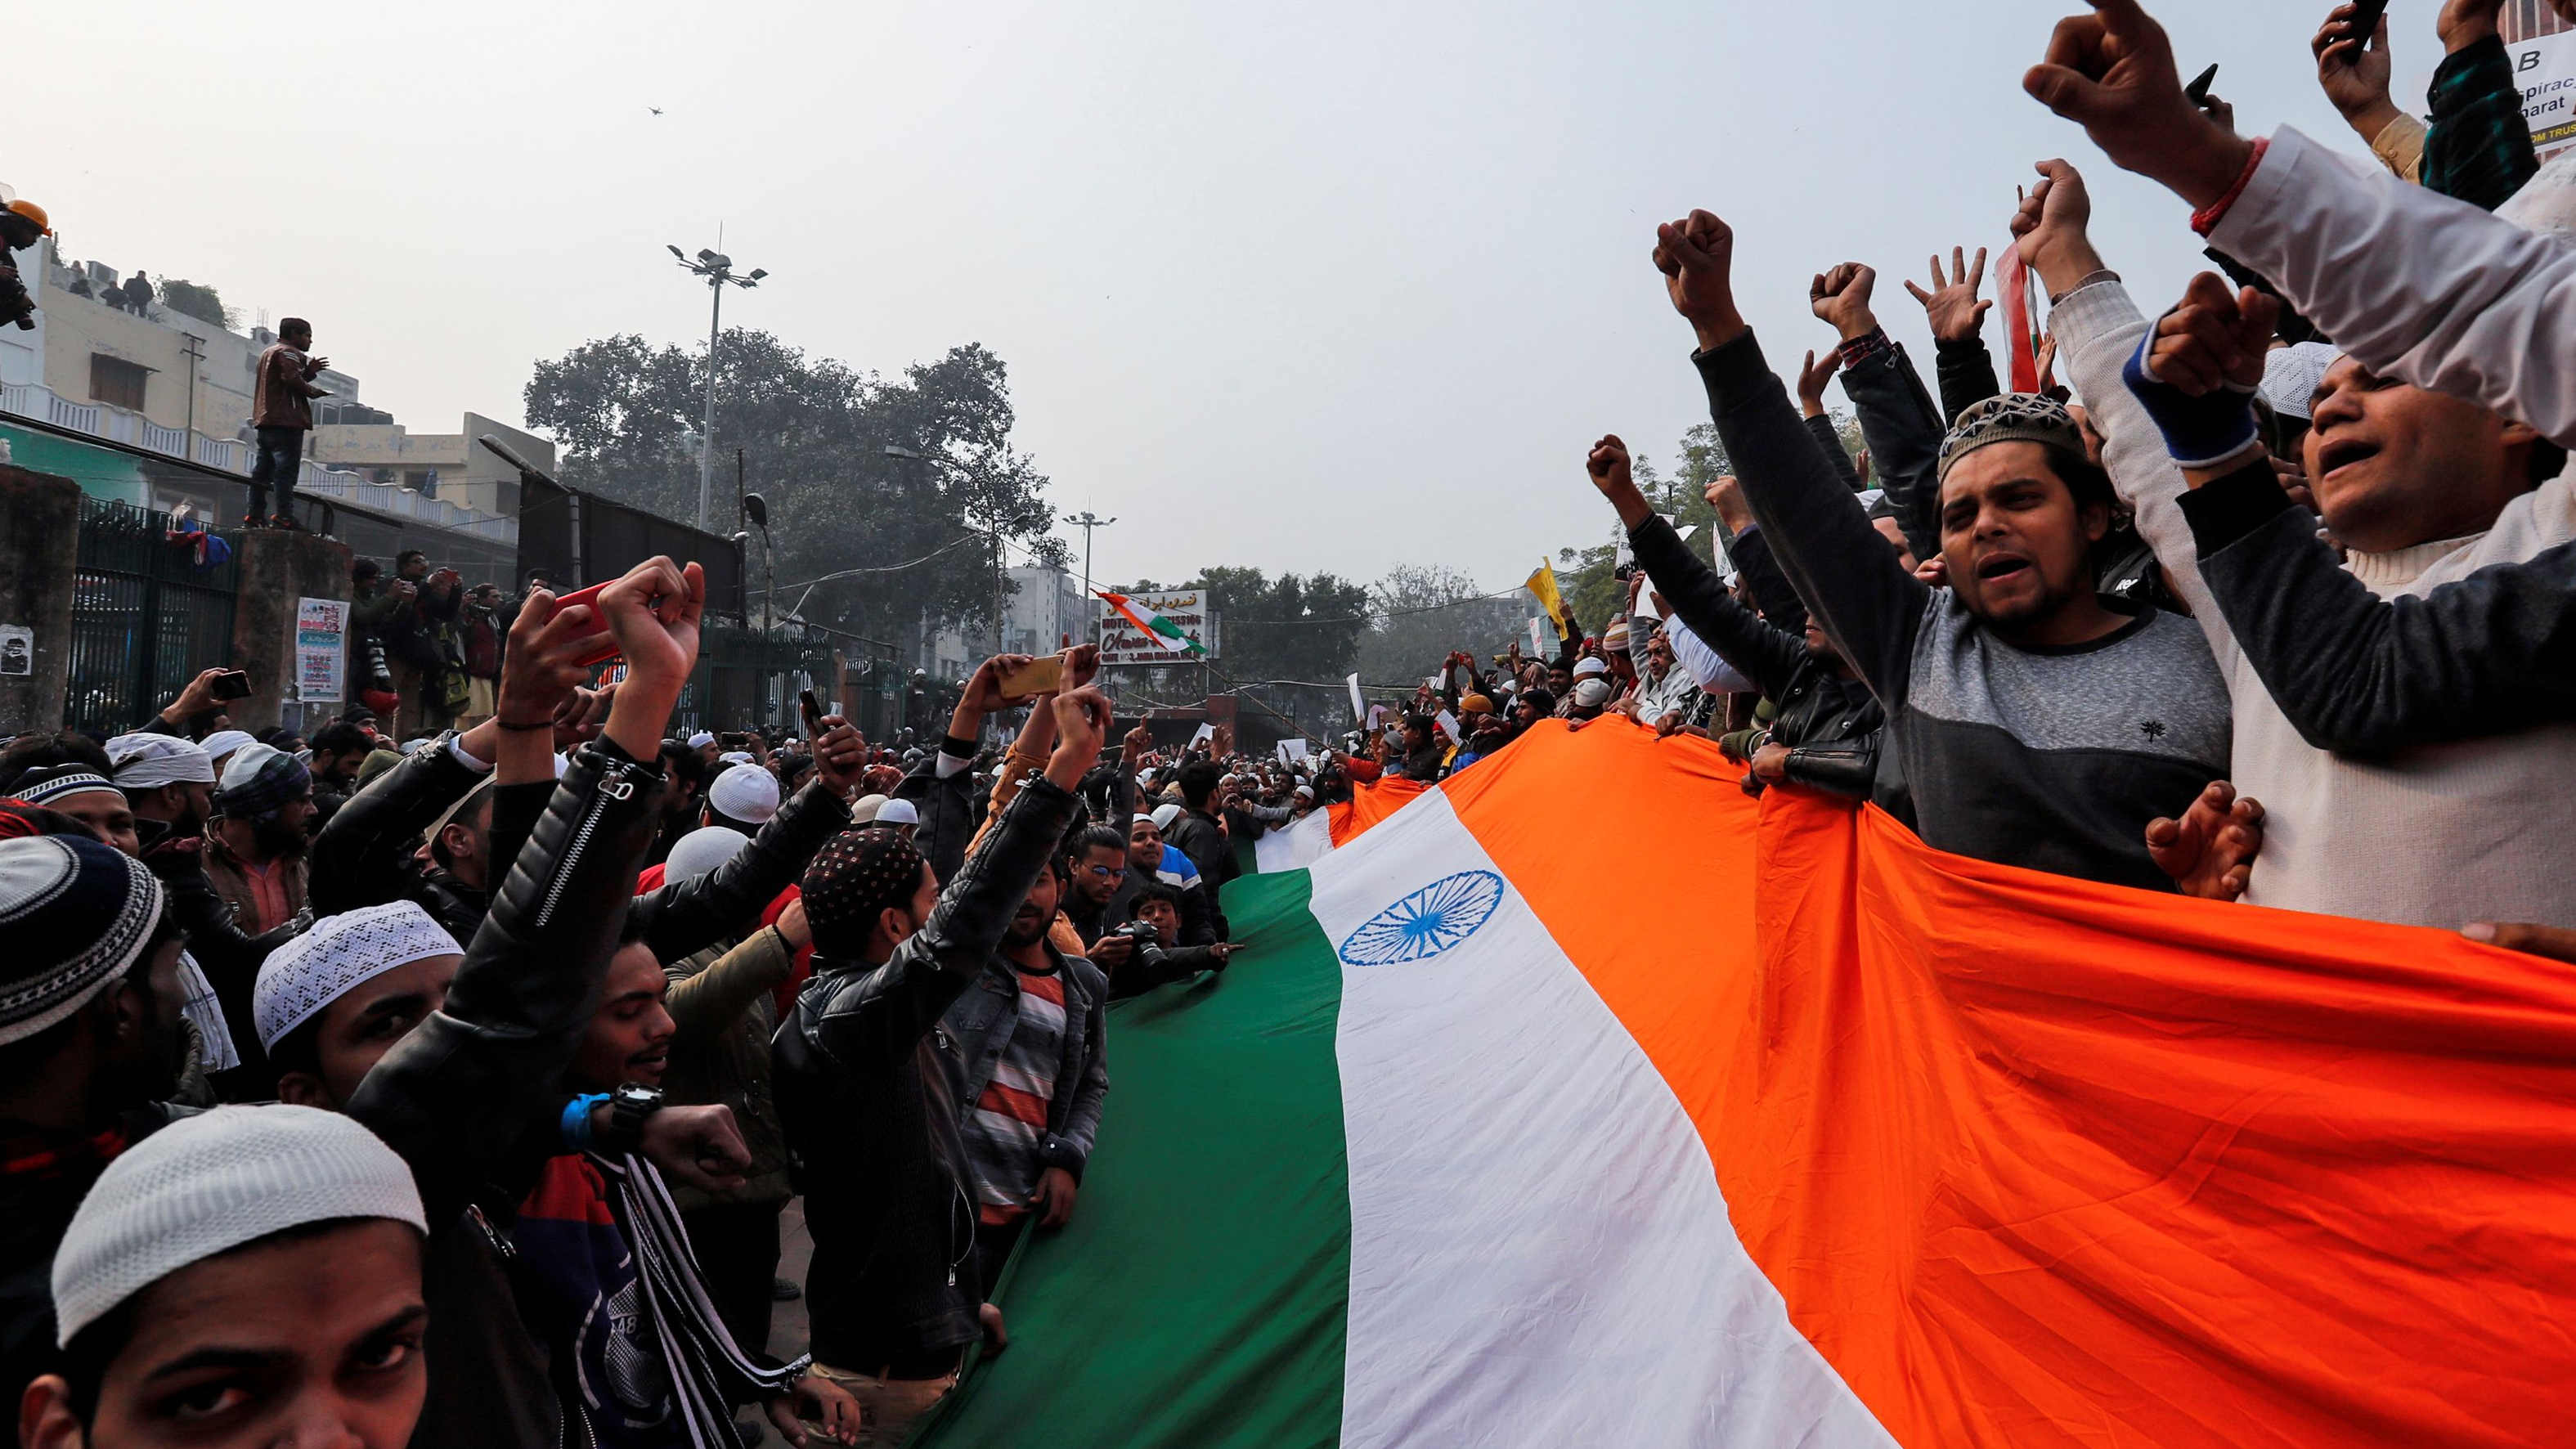 Protesters hold Indian flag in Delhi